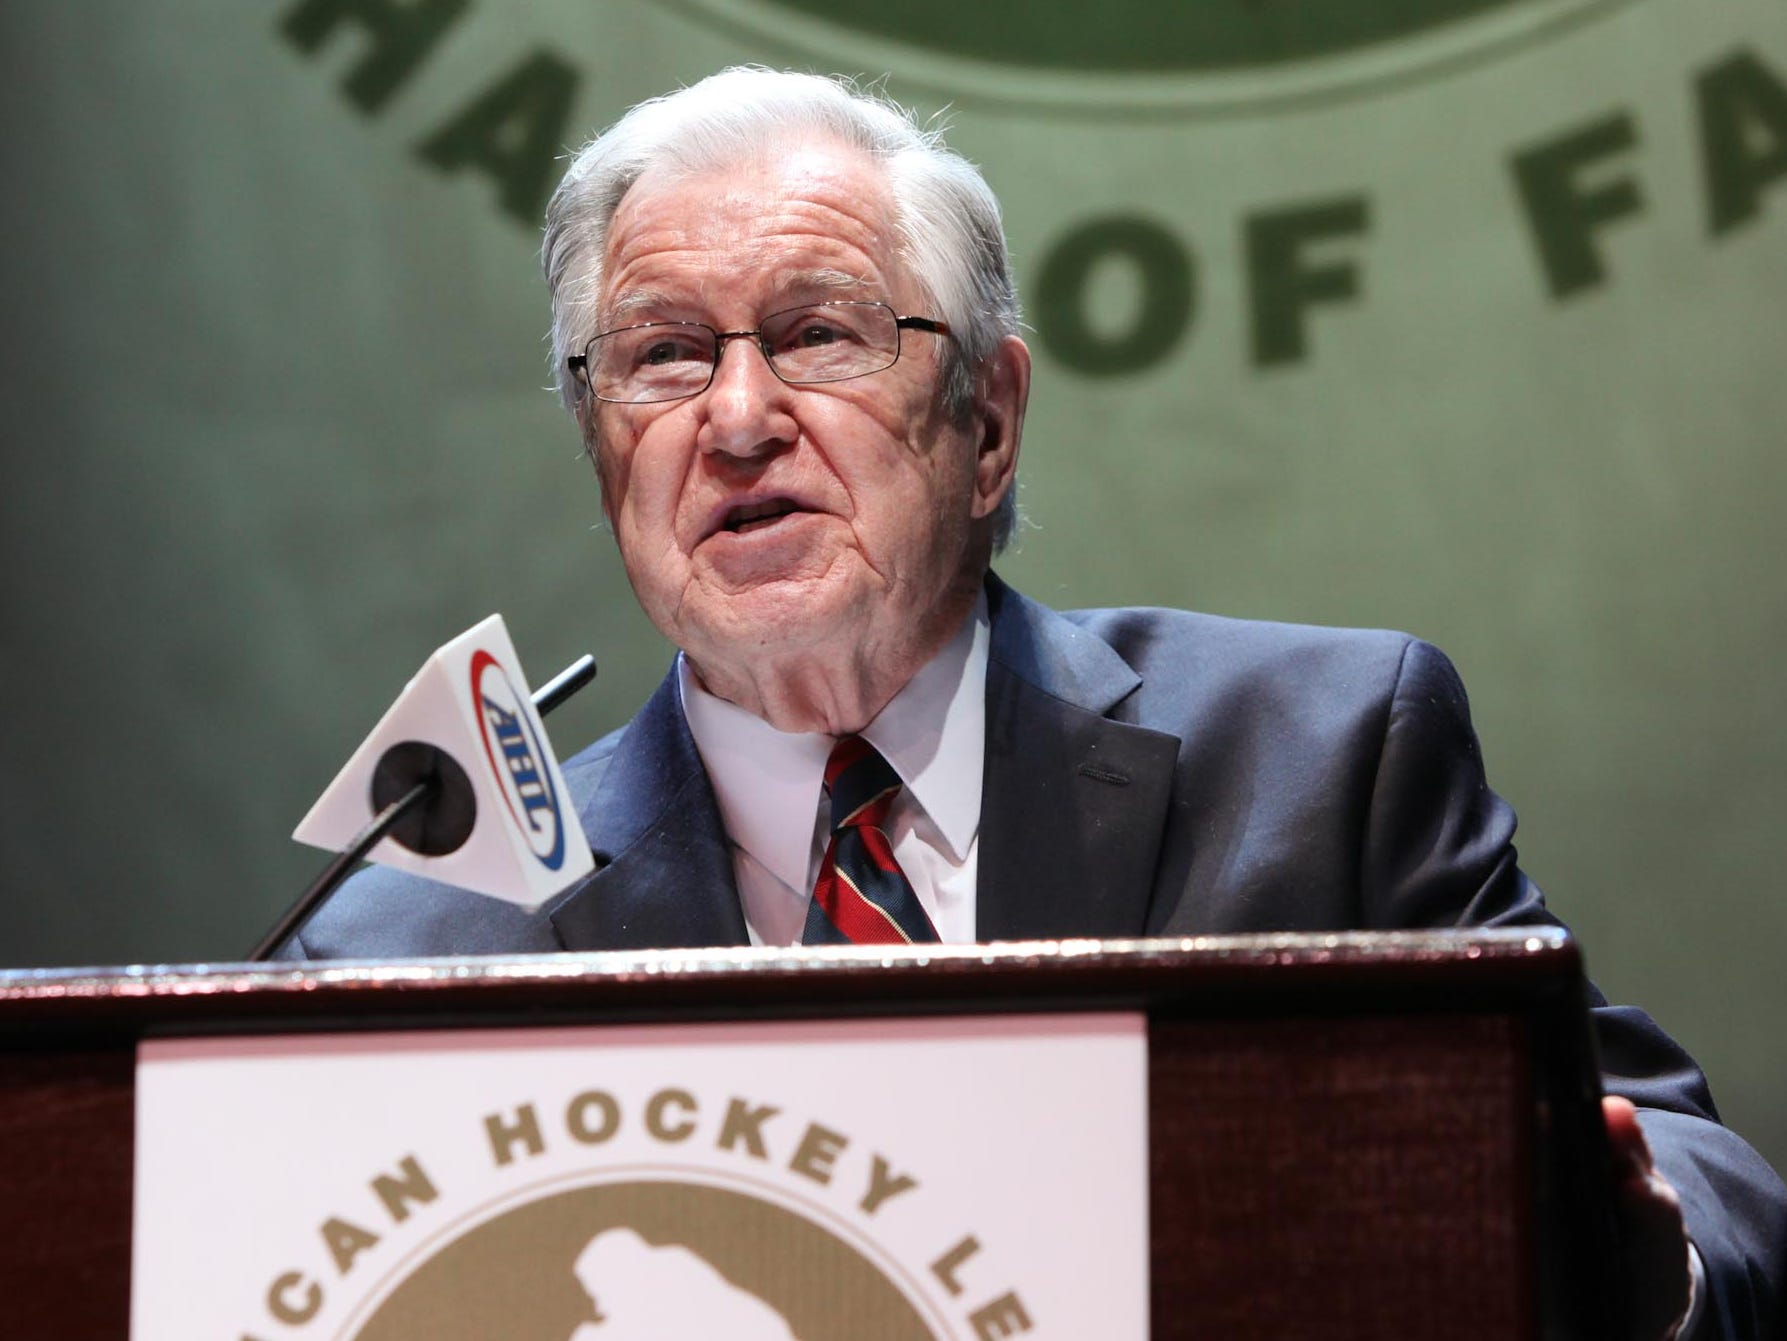 Joe Crozier delivers his induction speech at the 2012 American Hockey League Hall of Fame ceremonies in Atlantic City, N.J.